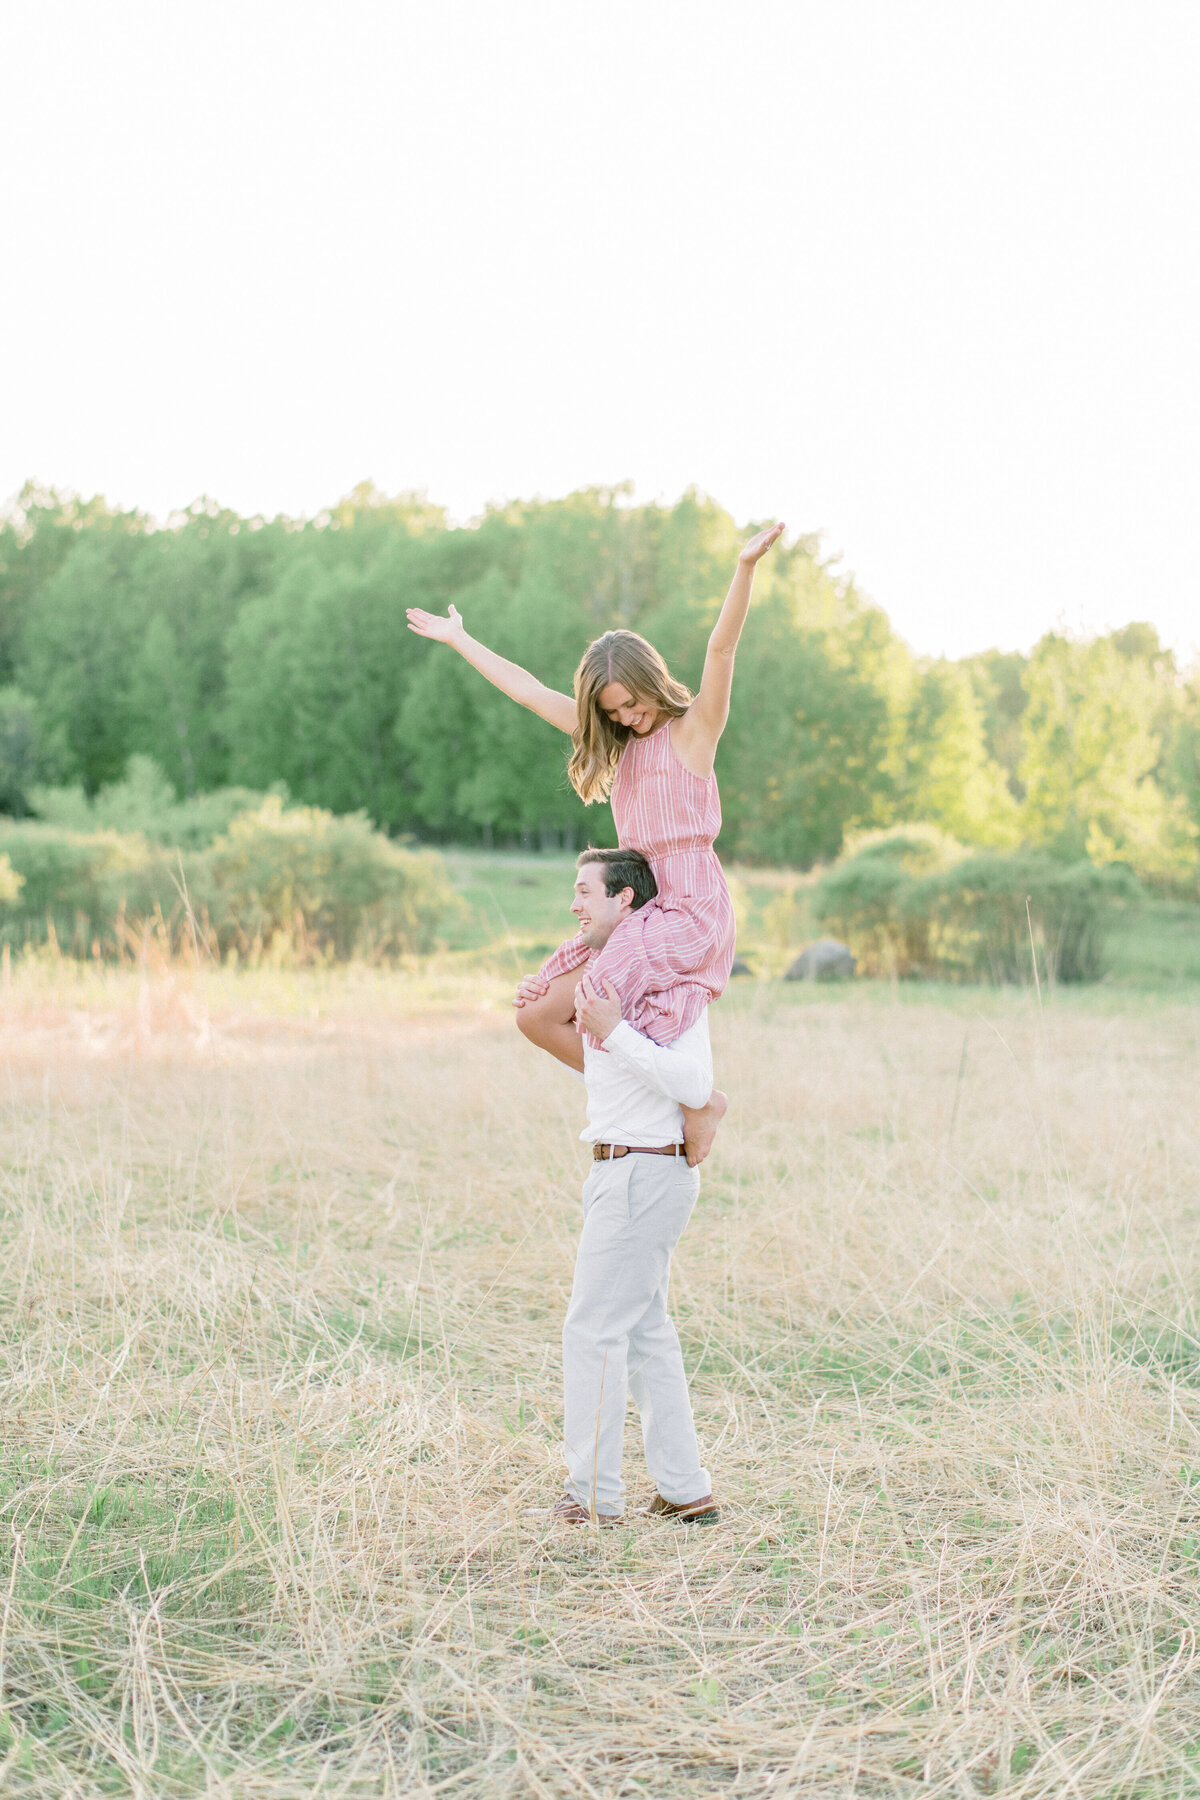 Minneapolis engagement Photographer, minnesota engagement photographer, mineapolis wedding photographer, minnesota wedding photographer, Engagement photo location inspo